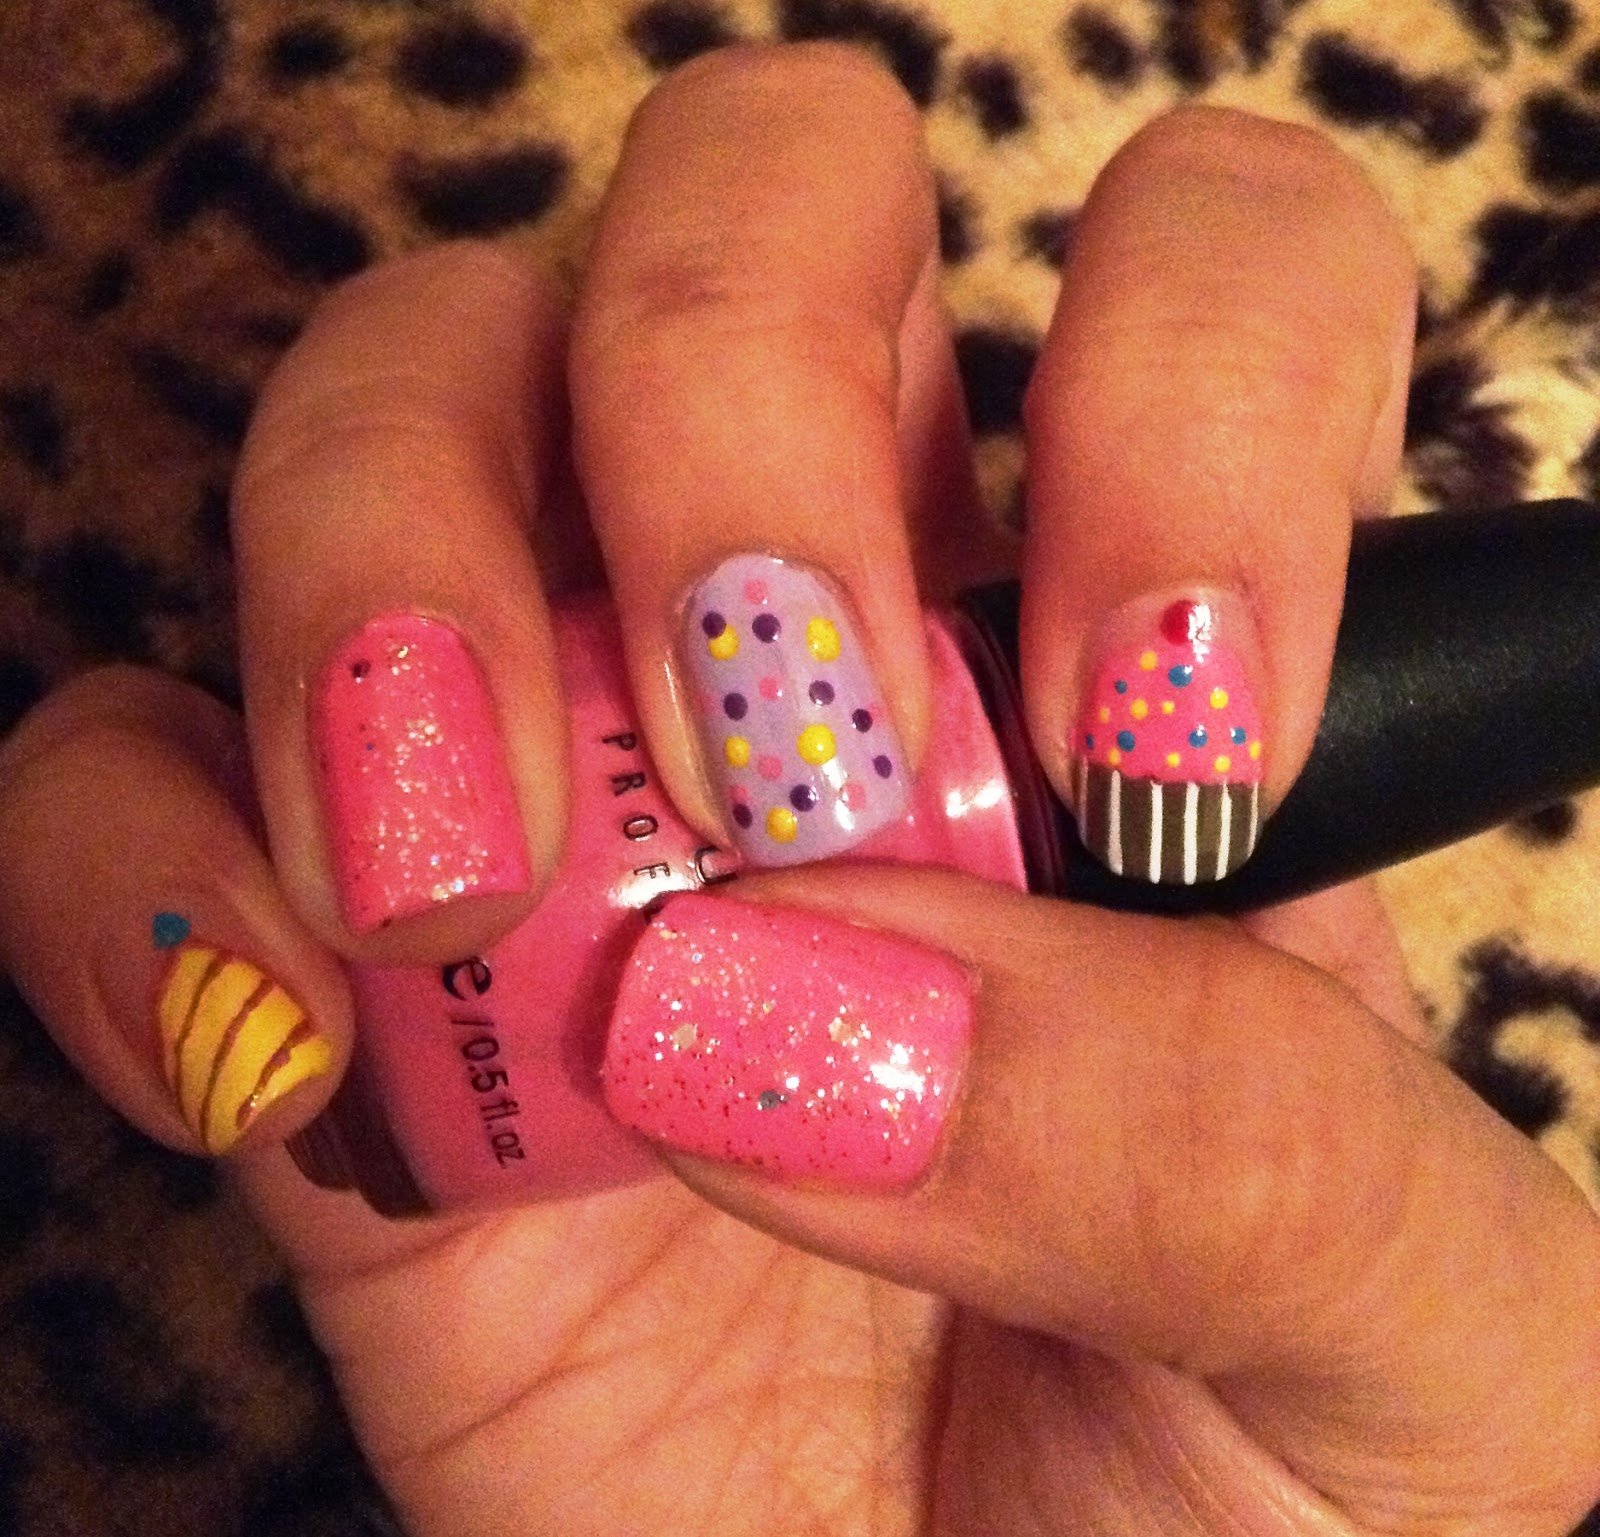 5 Finger Discount: Cute Holiday Nail Art on a budget: Easy Birthday ...